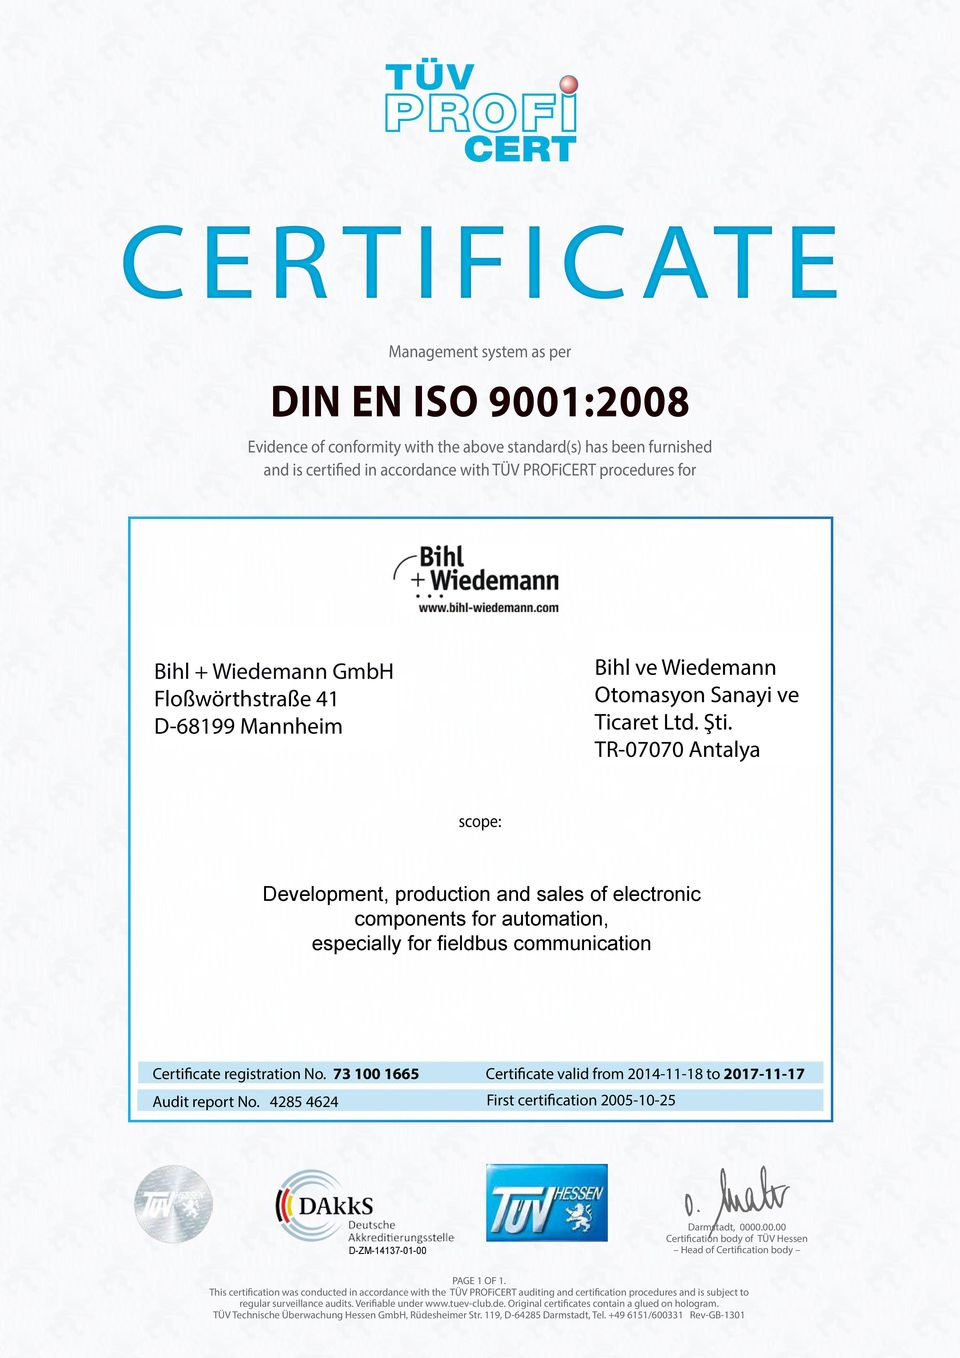 73 100 1665 Certificate valid from 2014-11-18 to 2017-11-17 Audit report No. 4285 4624 First certification 2005-10-25 Darmstadt, 0000.00.00 Certification body of TÜV Hessen Head of Certification body PAGE 1 OF 1.